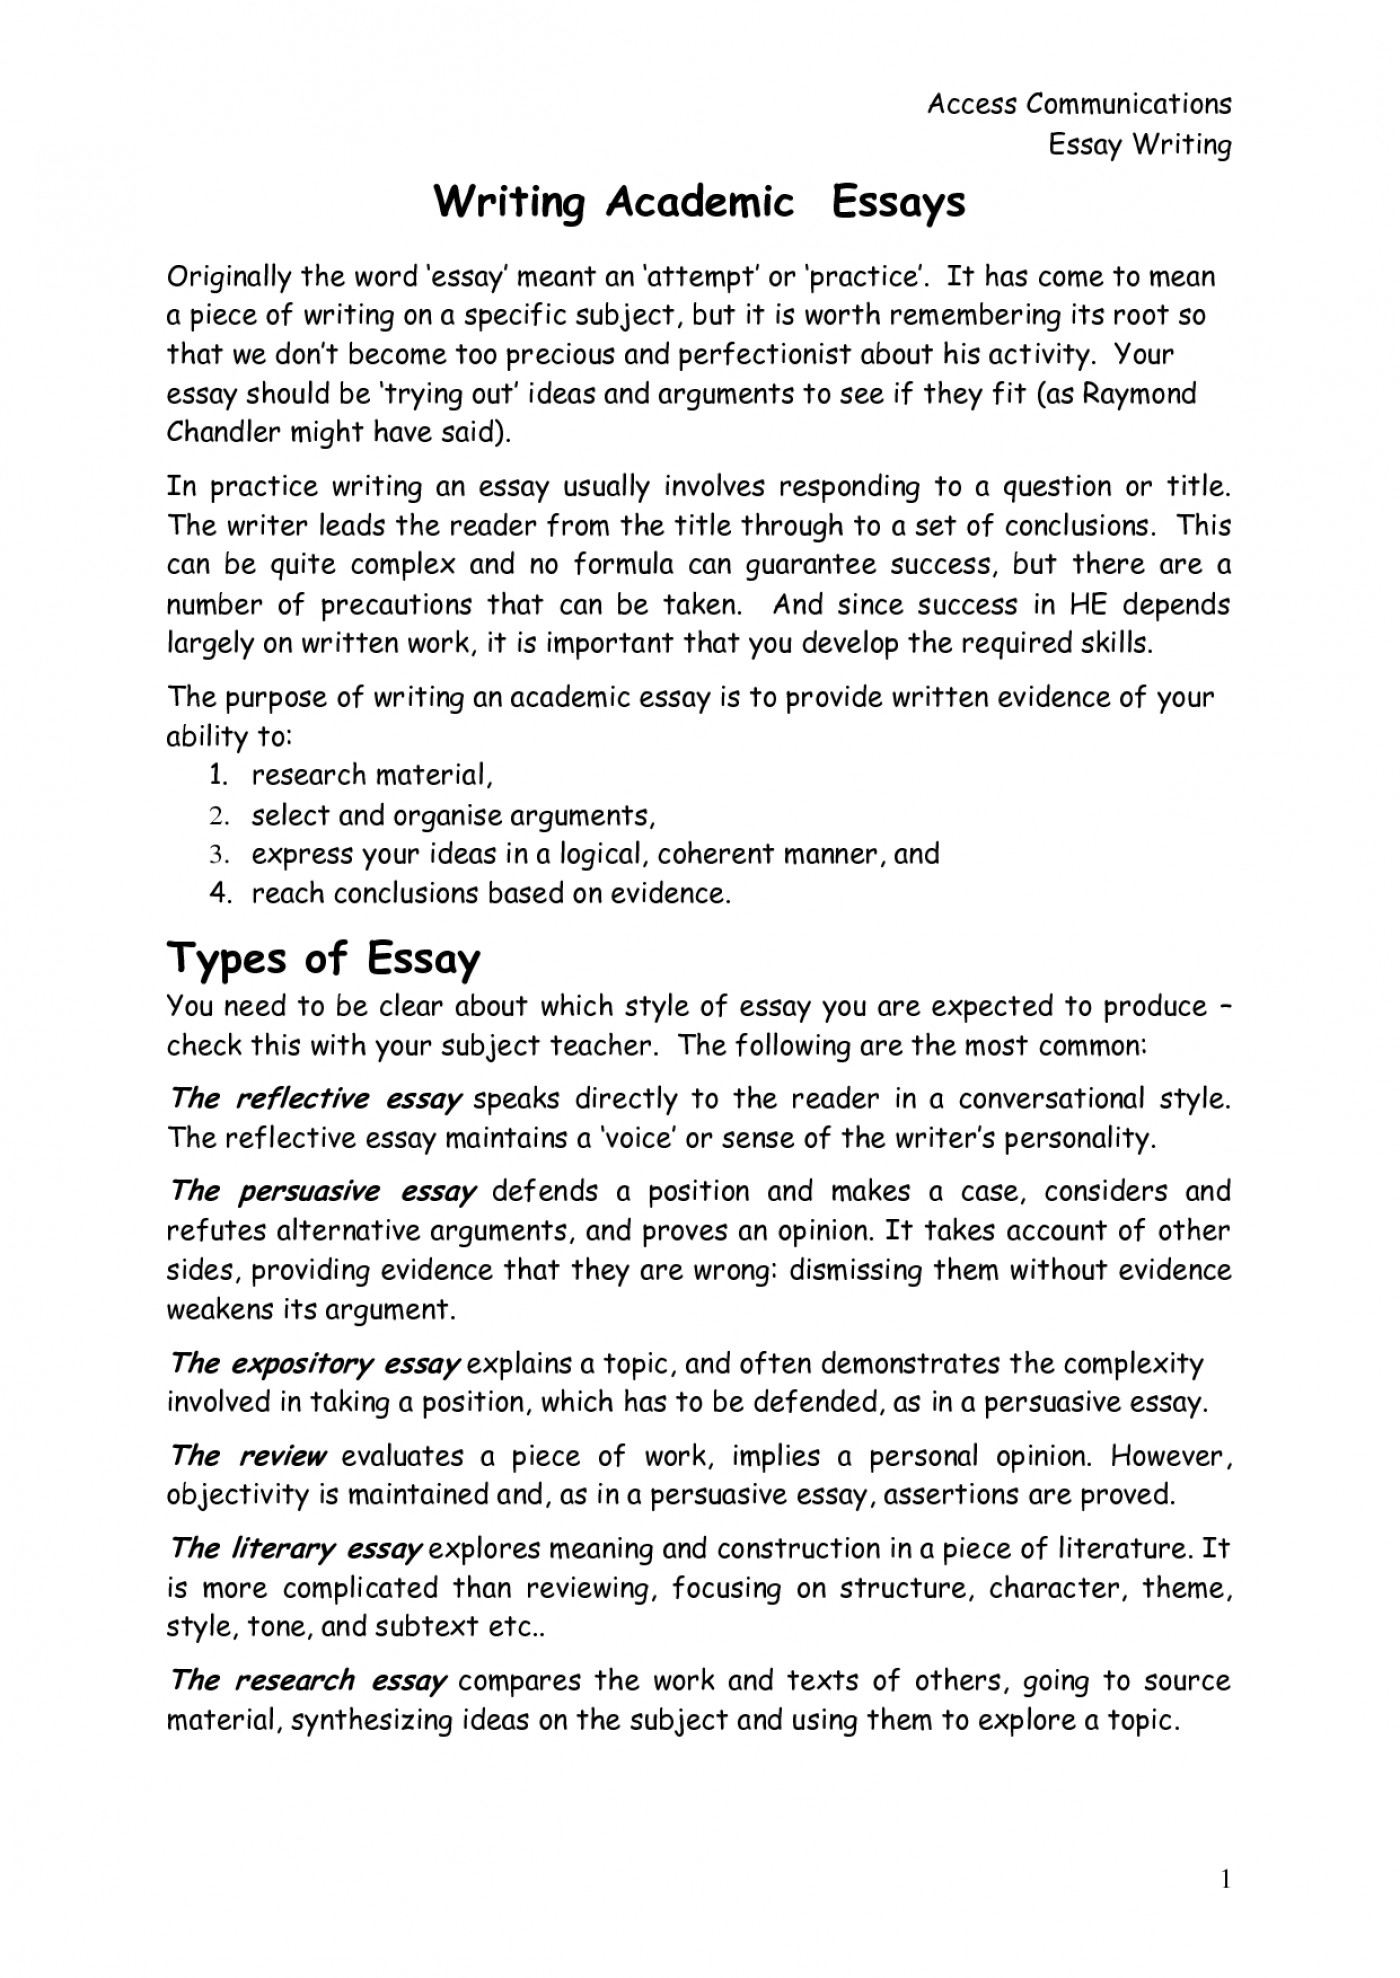 016 Reflective Essay On Academic Writings Beautiful Examples For Middle School Apa High 1400